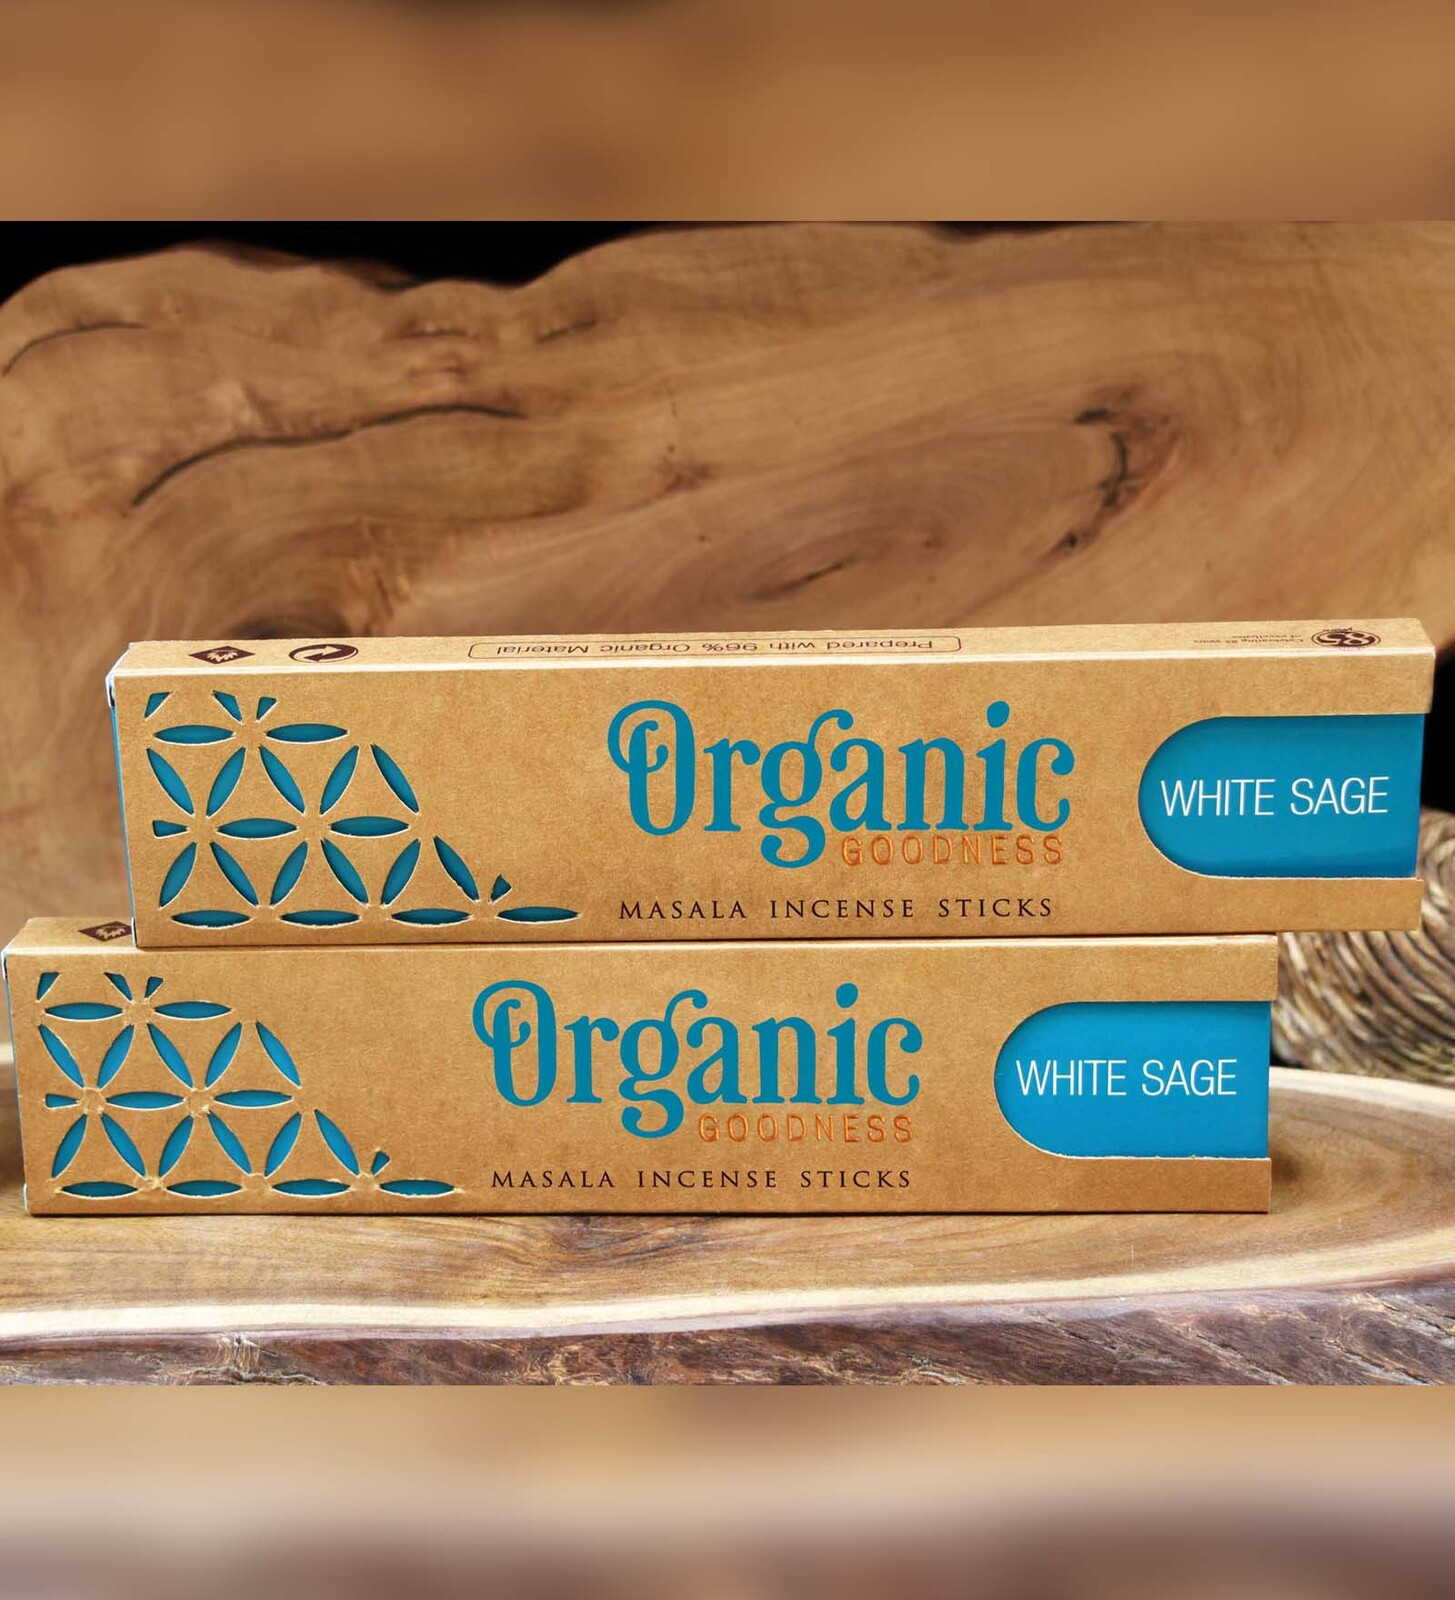 Organic Goodness Masala Incense - WHITE SAGE